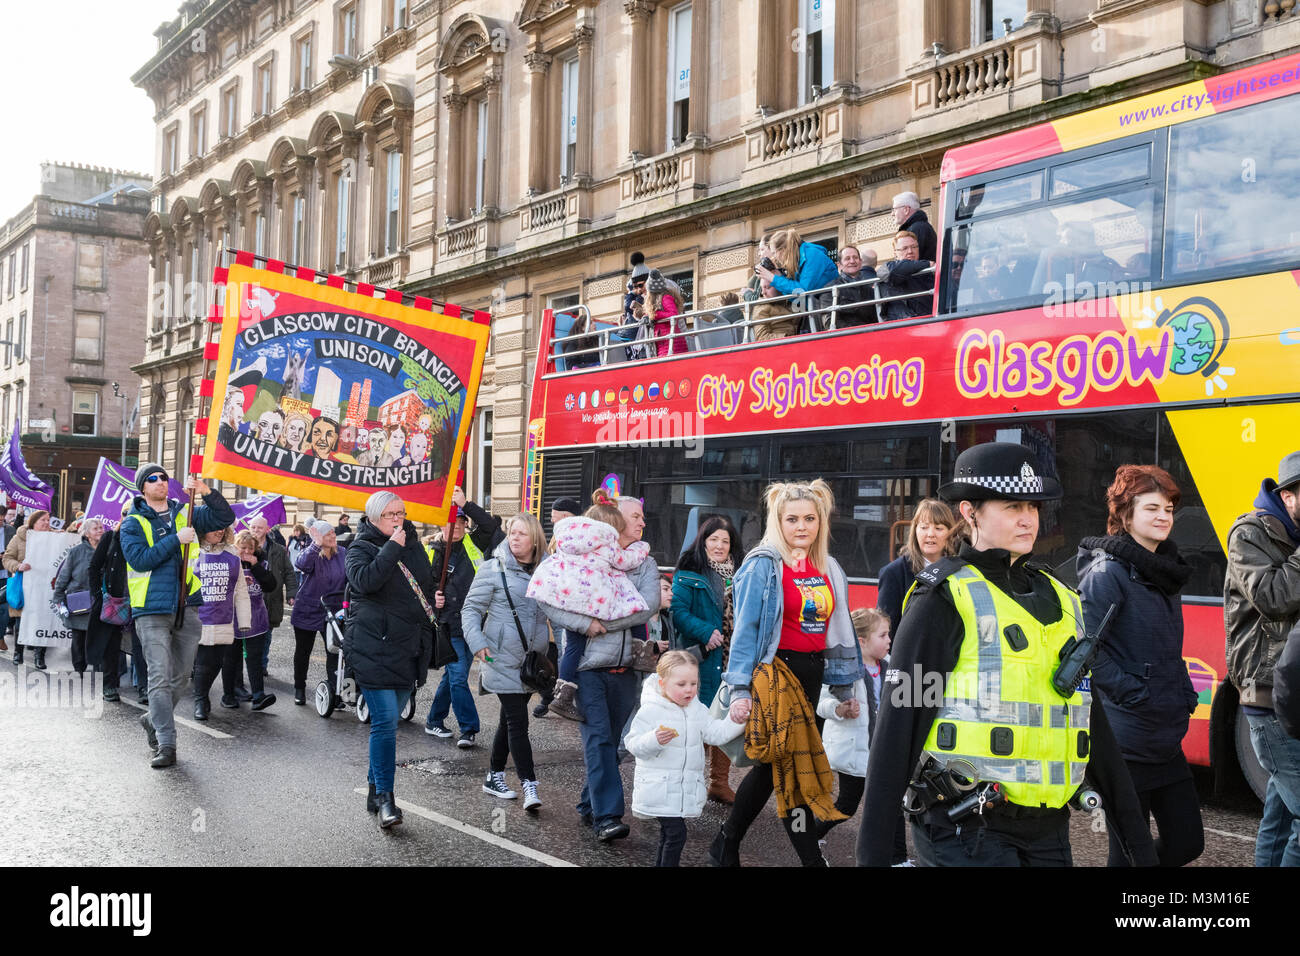 Equal Pay demonstration and march in Glasgow, Scotland 10 February 2018 - Stock Image